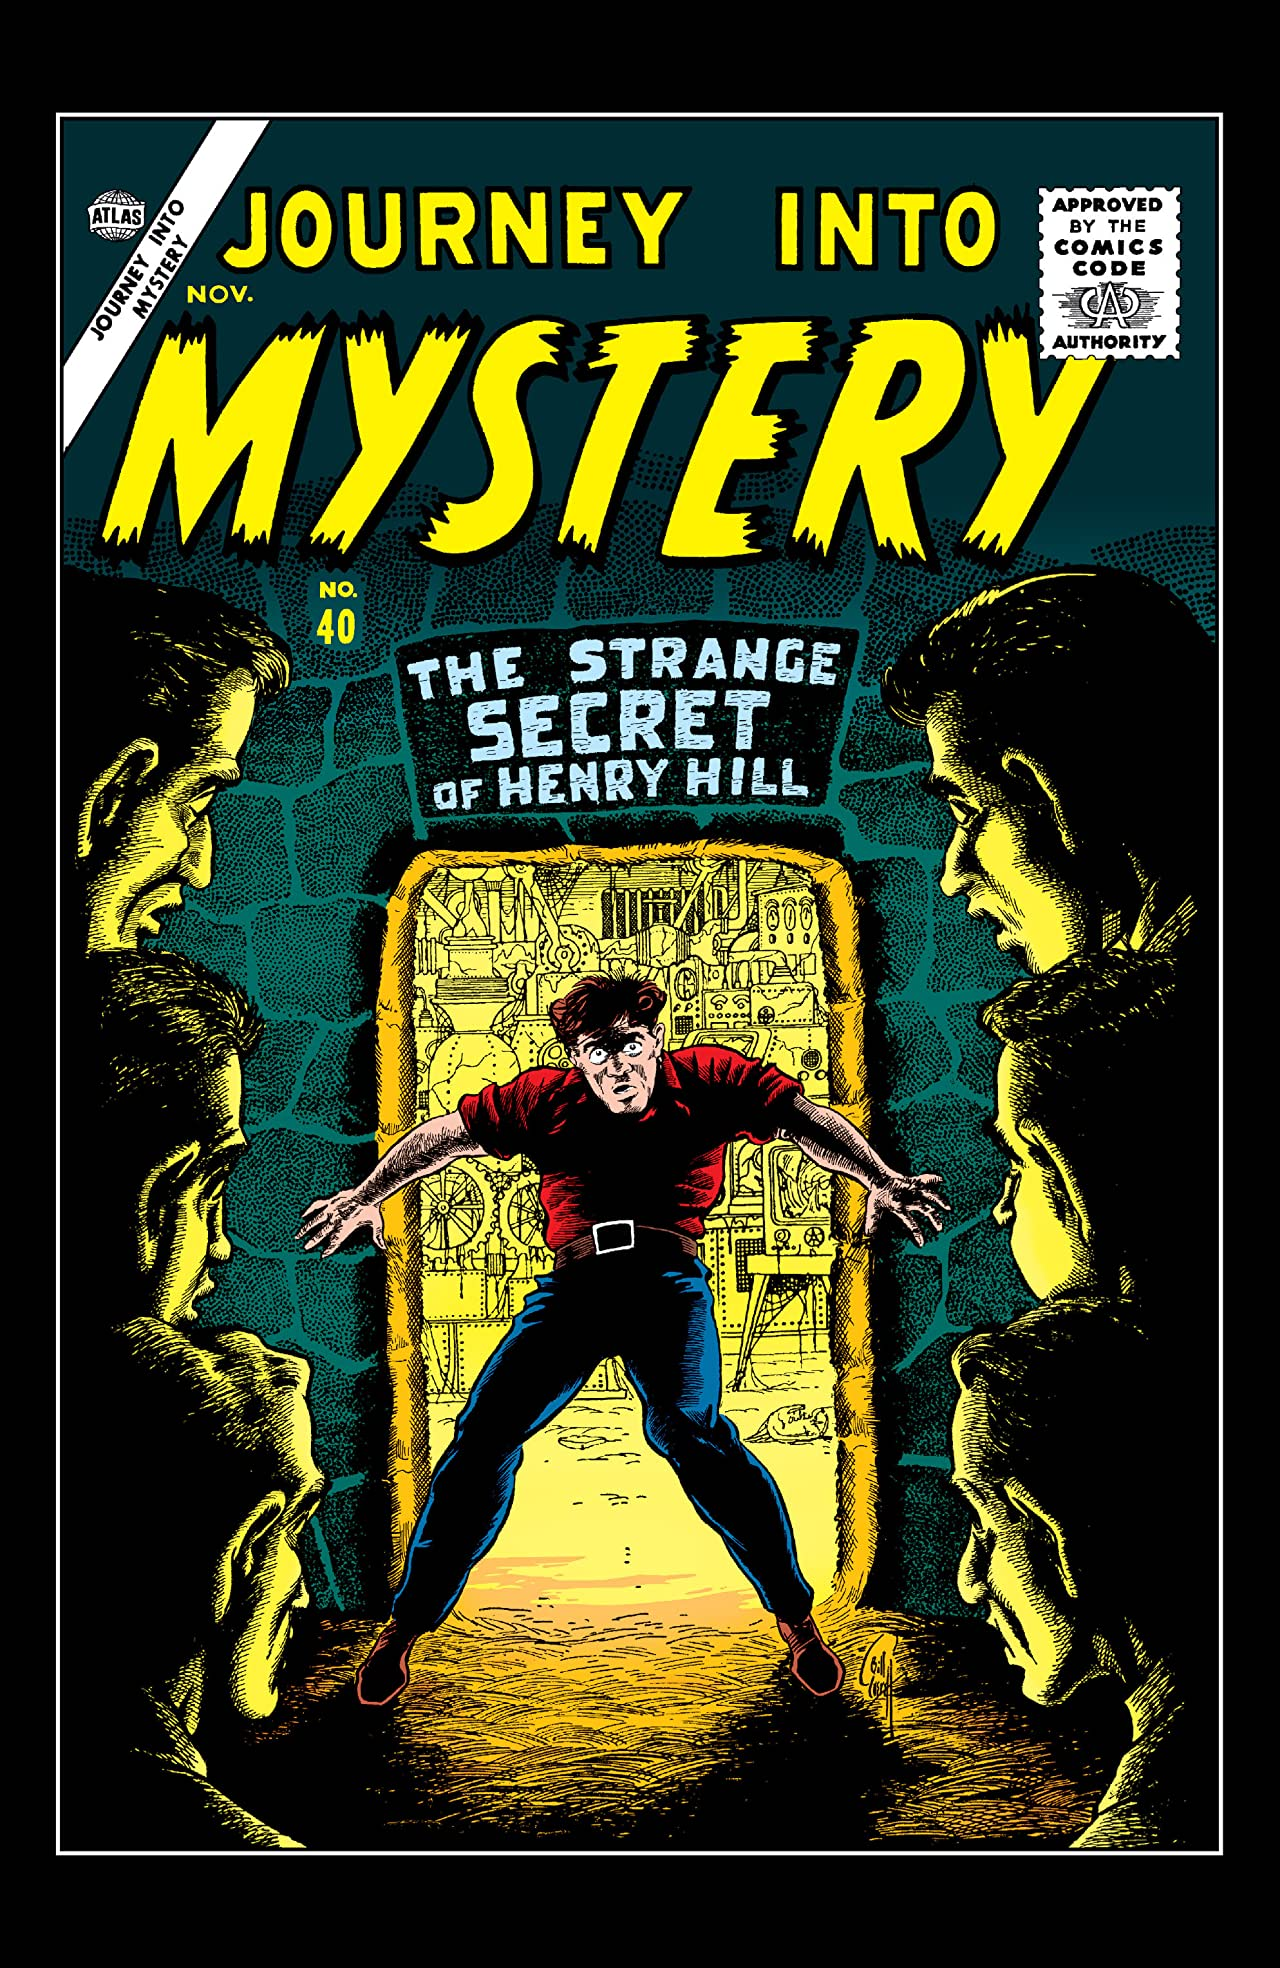 Journey Into Mystery #40